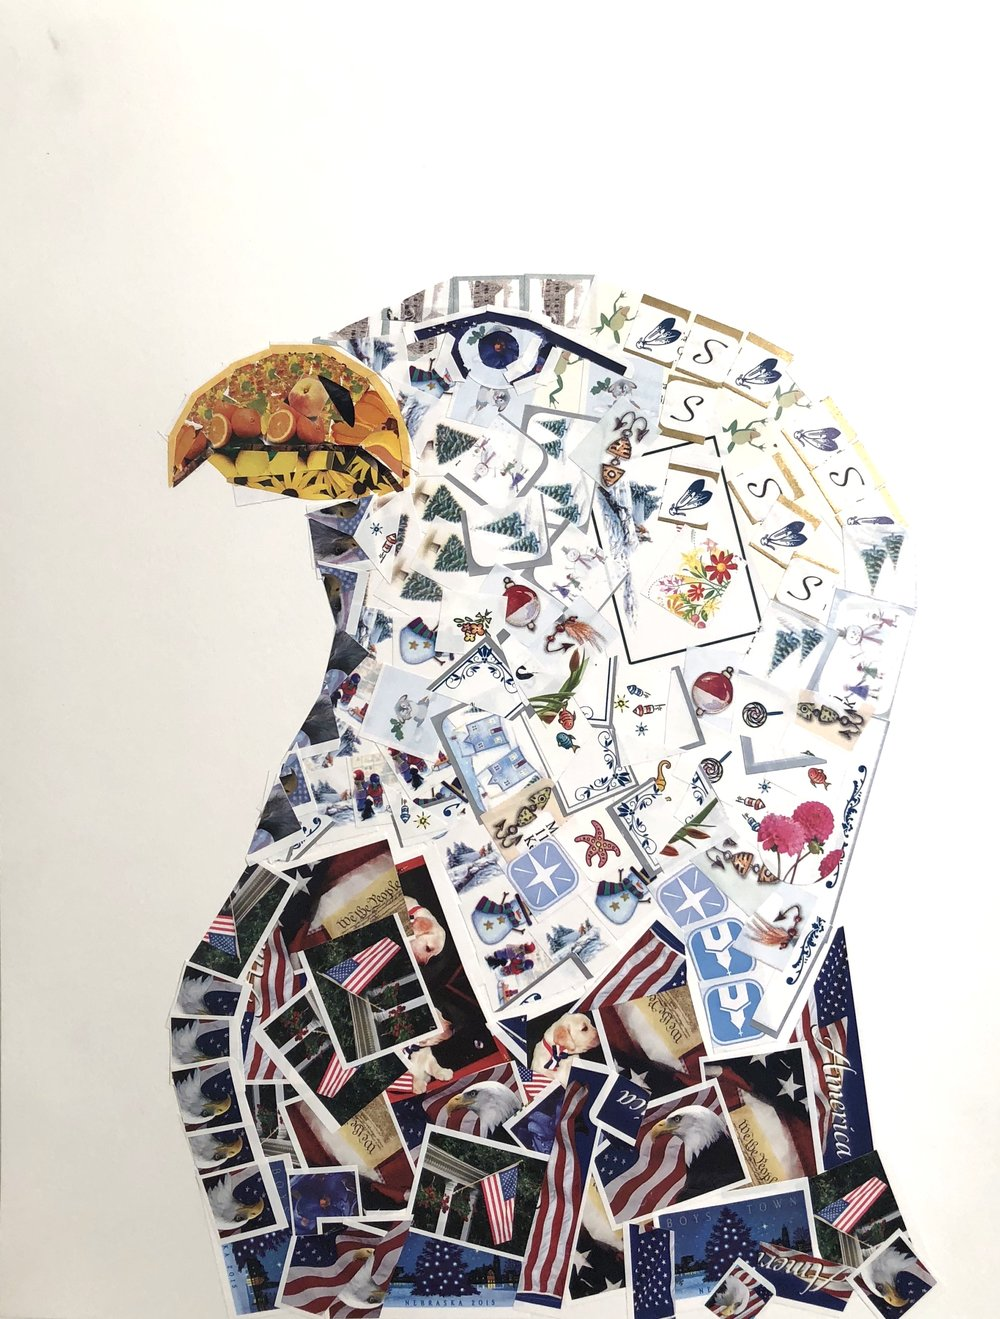 7 MAURO SOGGIU-_EAGLE_-14X11 INCHES-STICKERS COLLAGE ON PAPER-2017-$600.JPG